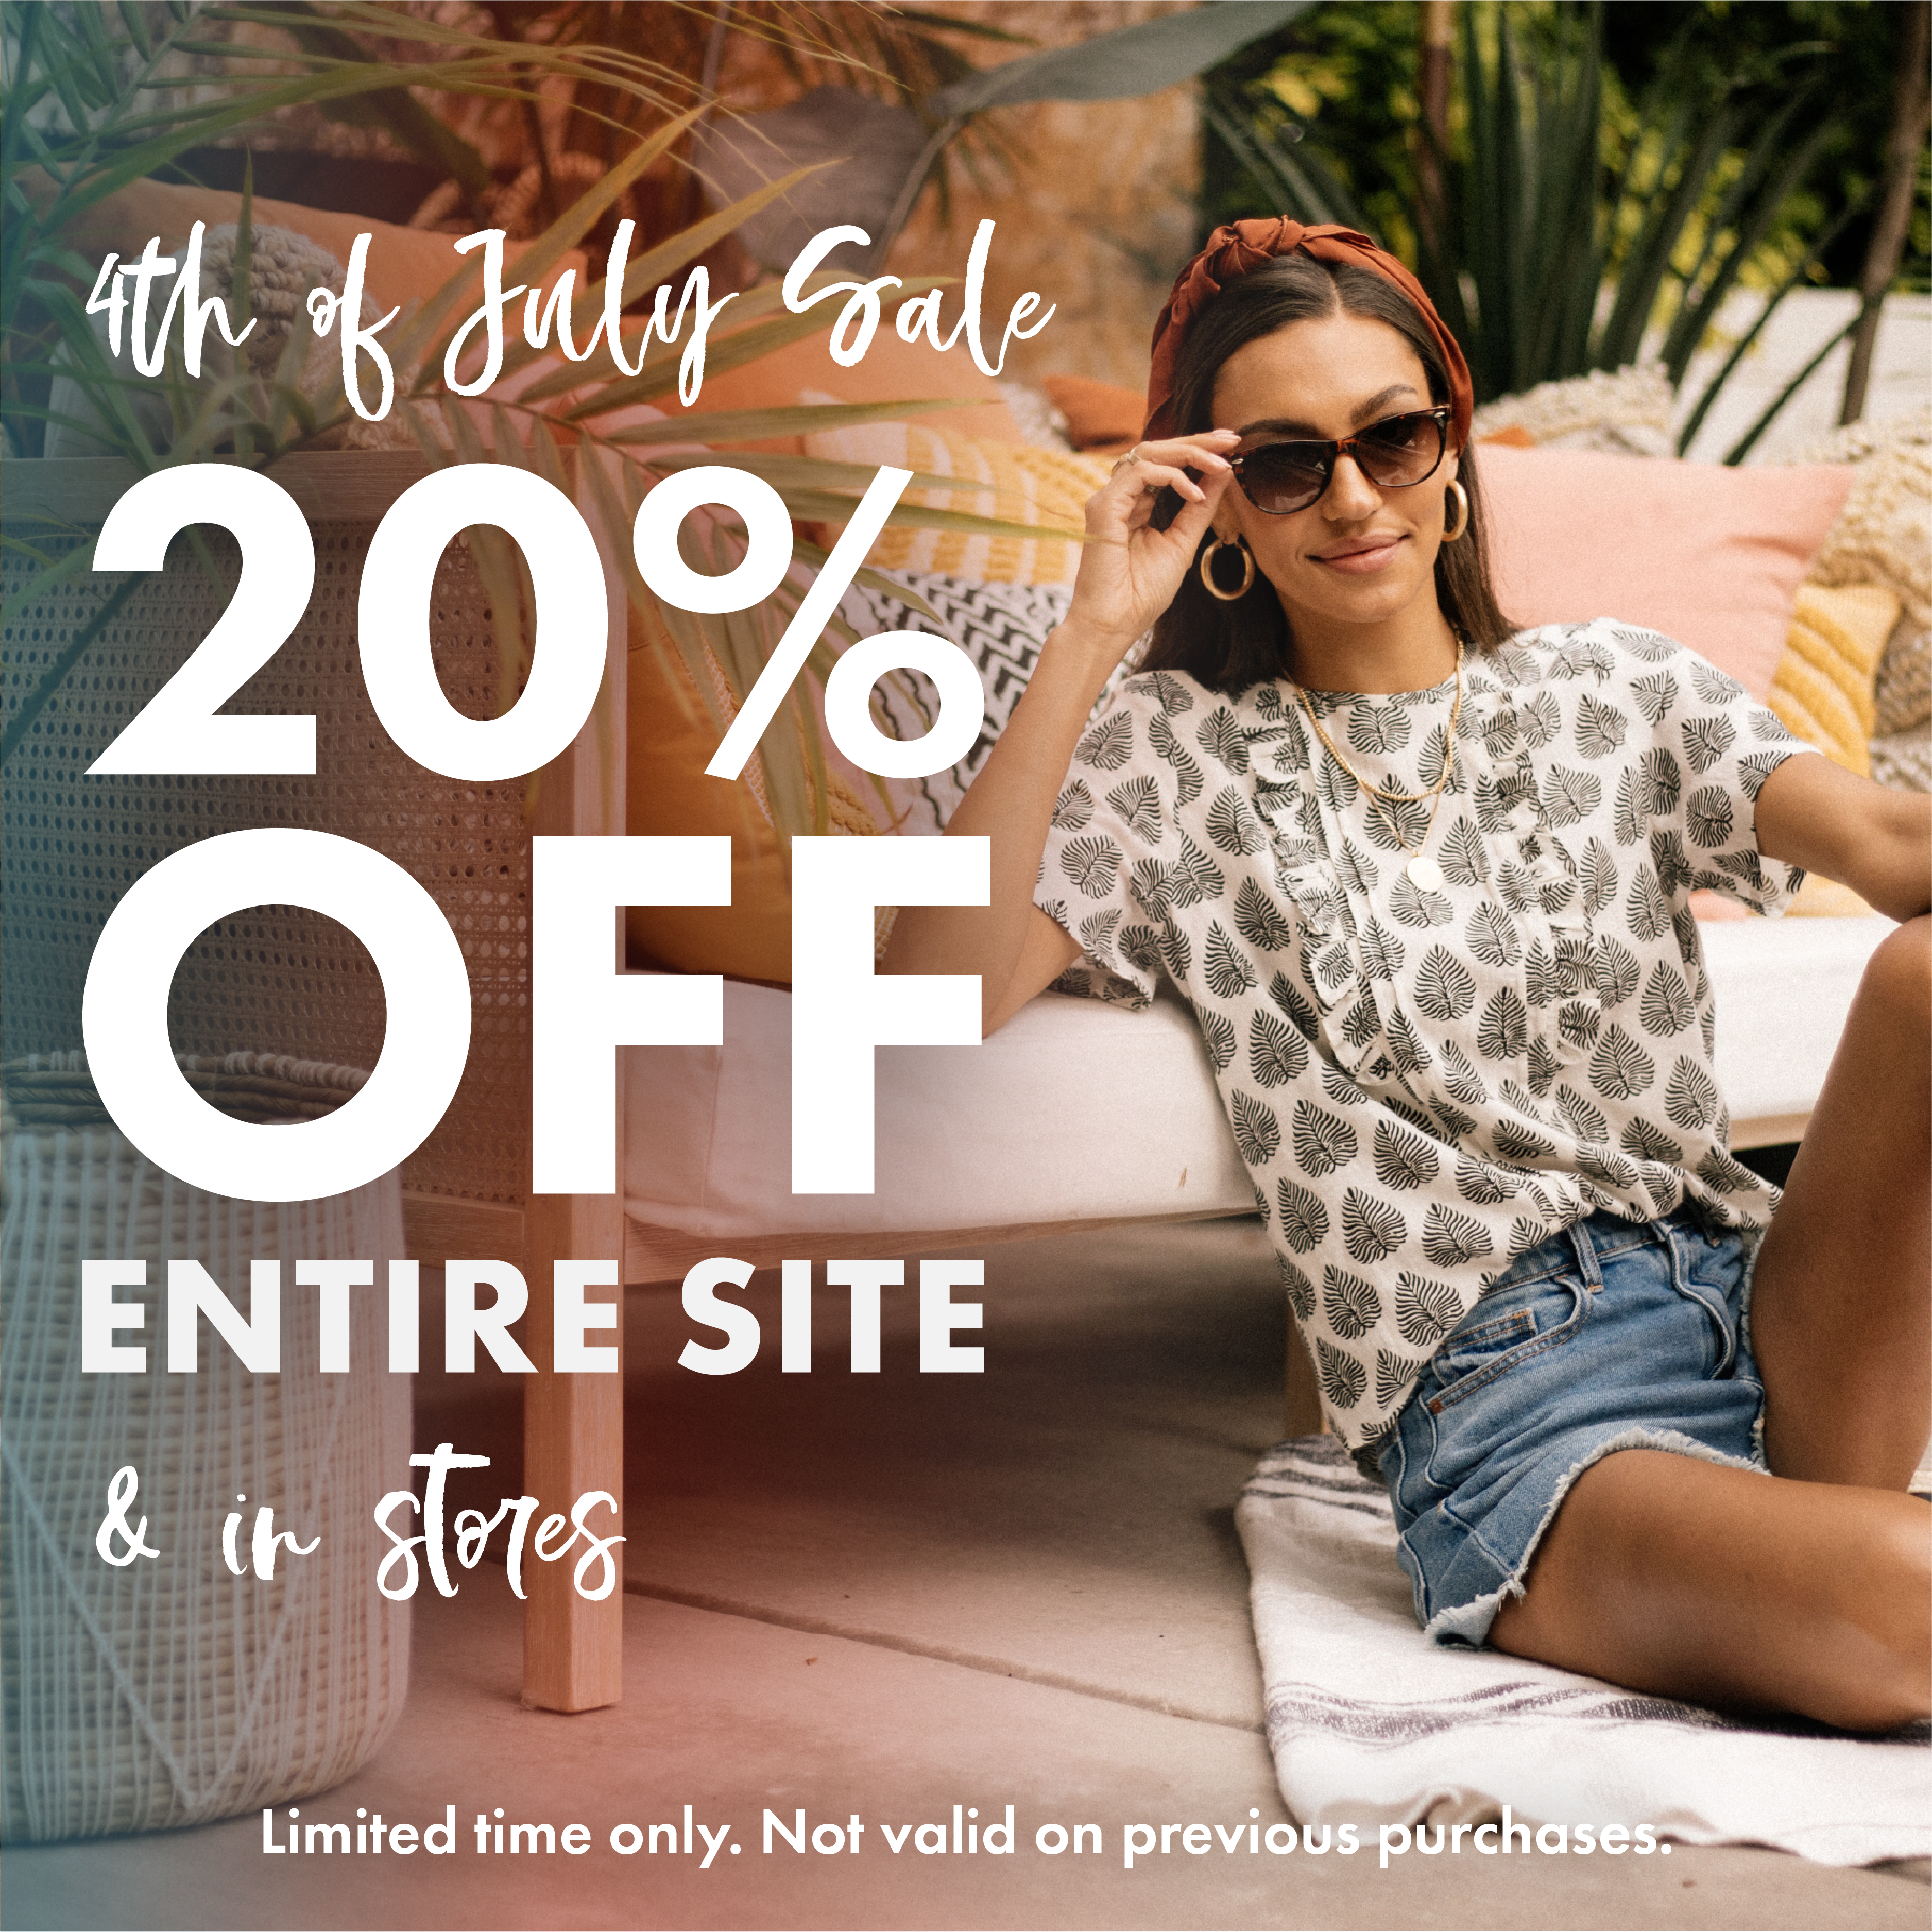 4th of July Sale! 20% off Everything! from Bohme Boutique